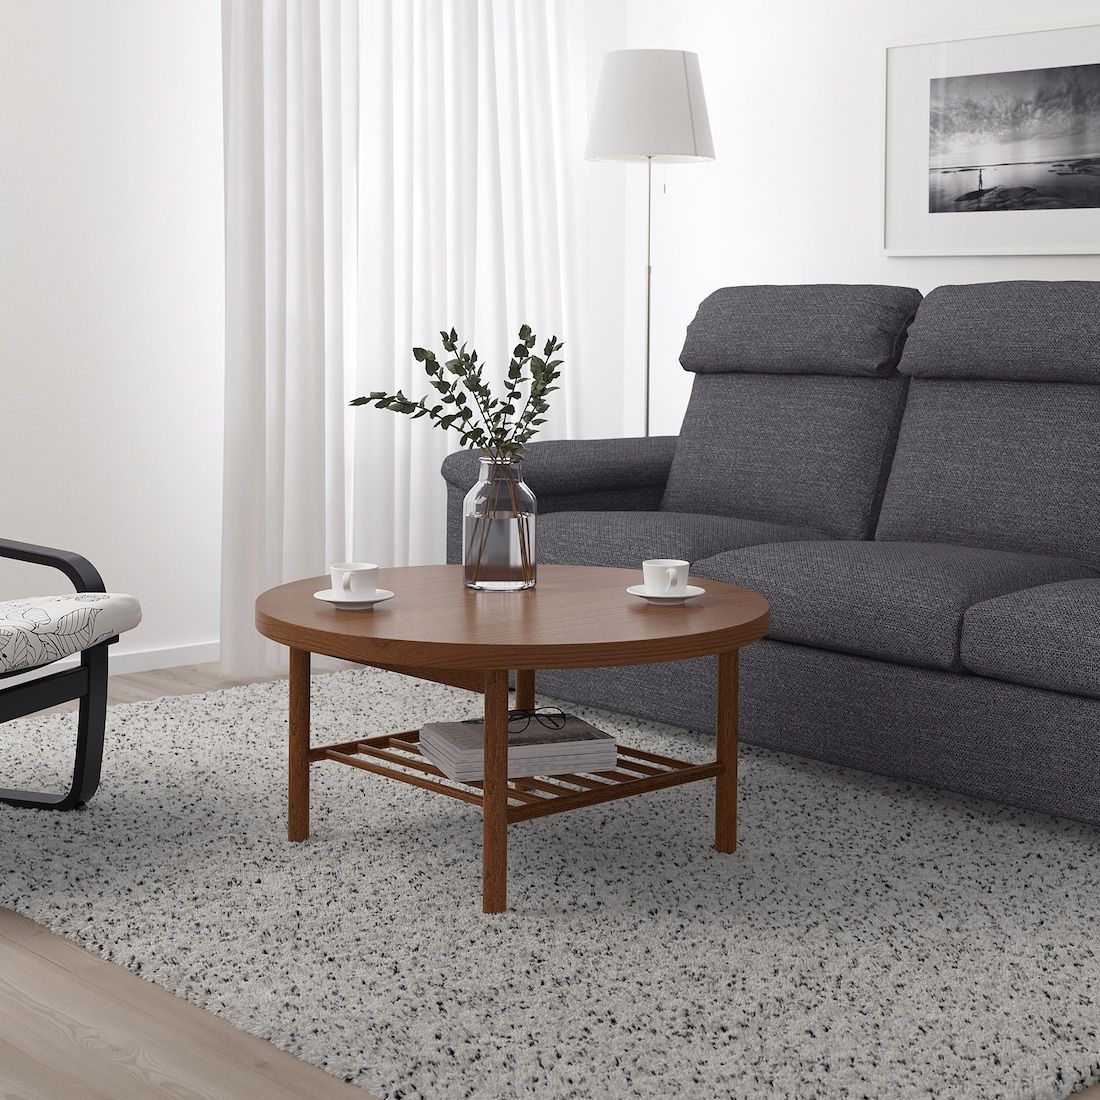 Listerby Coffee Table Brown 35 3 8 Ikea Coffee Table Wooden Coffee Table Designs Ikea Coffee Table [ 1100 x 1100 Pixel ]